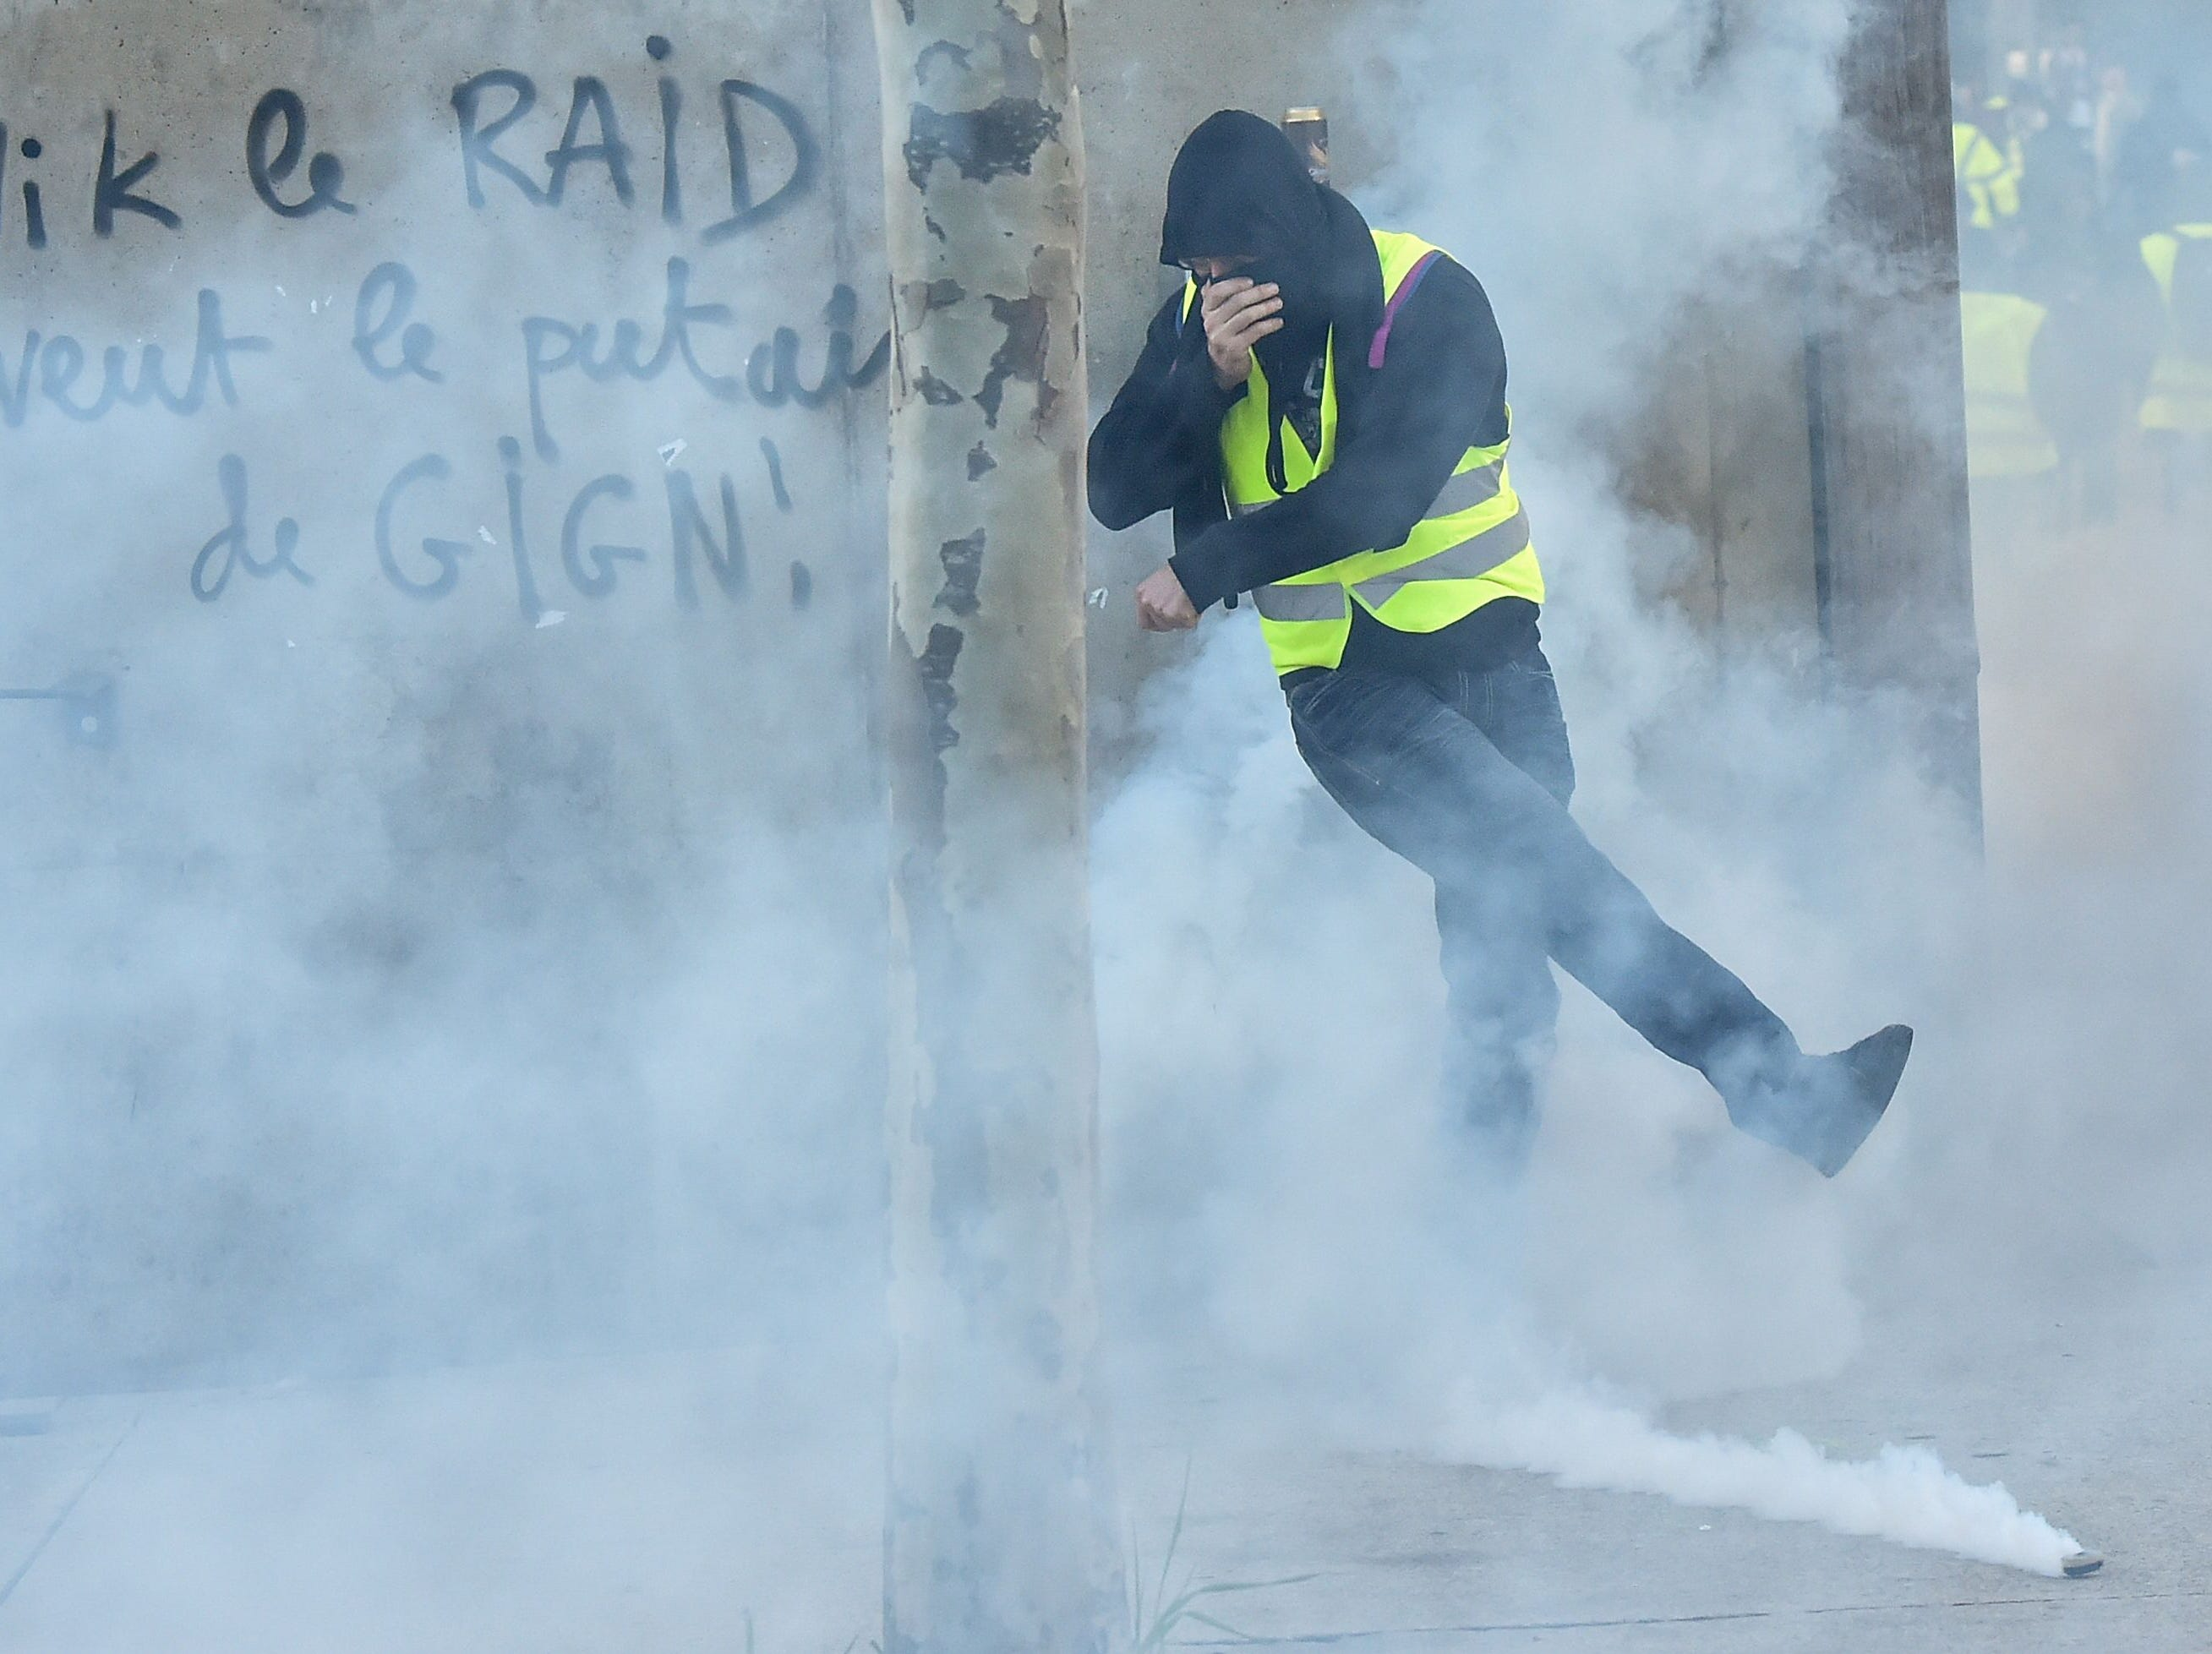 A member of the yellow vest (gilet jaune) kicks away a tear gas canister as he takes part in the 15th consecutive Saturday of demonstrations in Rennes, western France on Feb. 23, 2019.